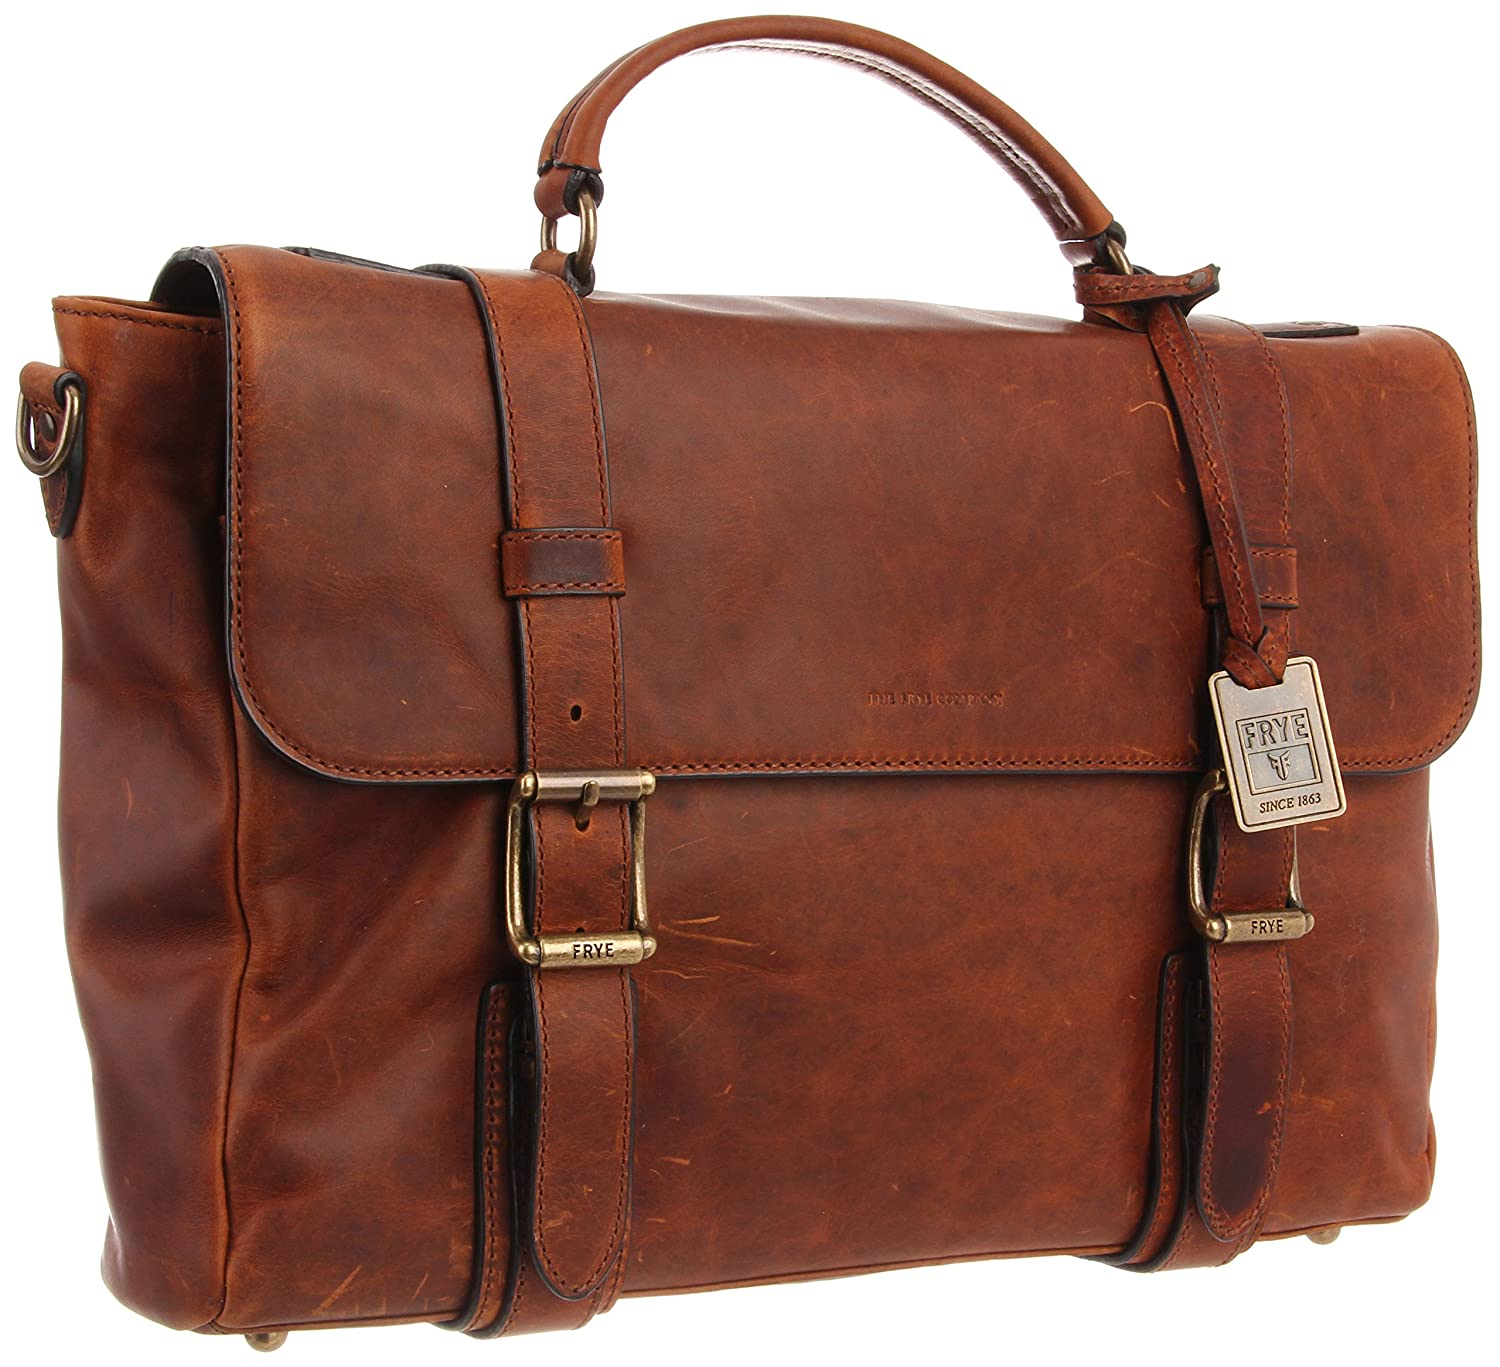 Frye Logan Flap Briefcase,Cognac,One Size: Amazon.in: Bags, Wallets &  Luggage